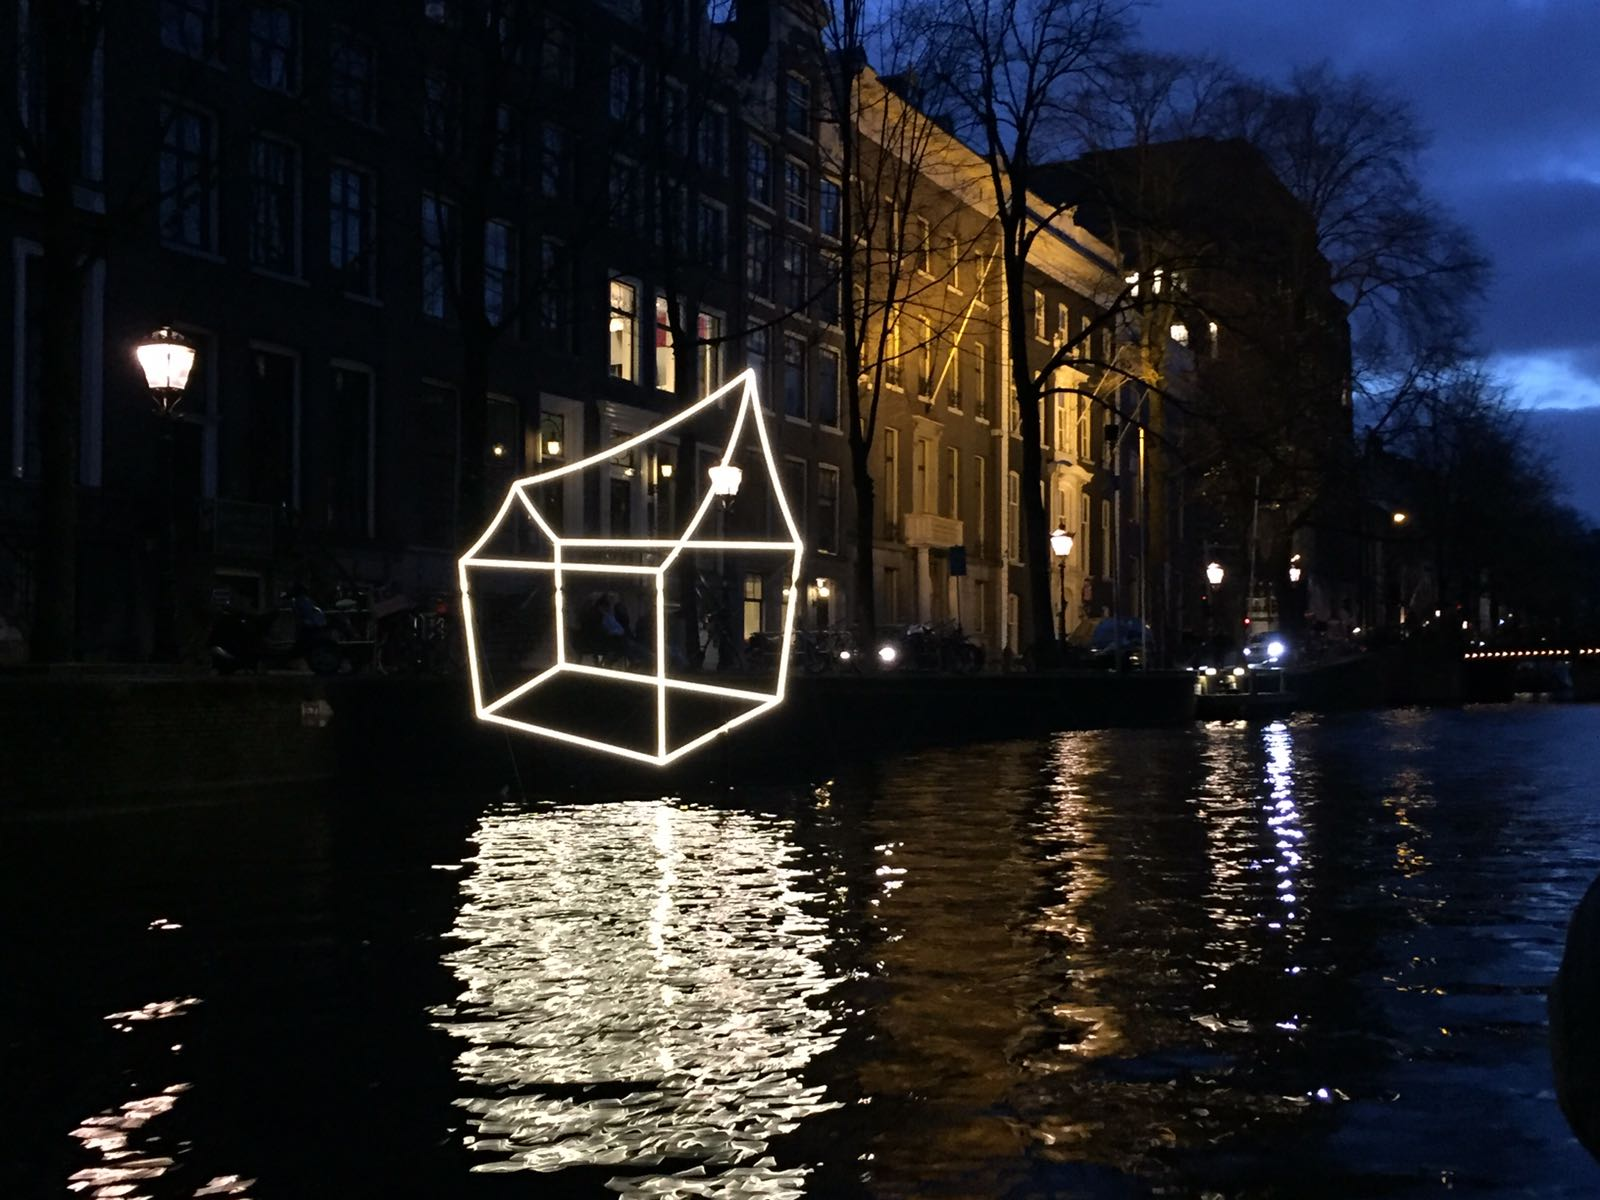 ... Sande And Our Team From The Lighting Design Academy MORE:  Www.welcometomyhometown.nl And Www.amsterdamlightfestival.com. CATEGORY:  Exterior, Light Art